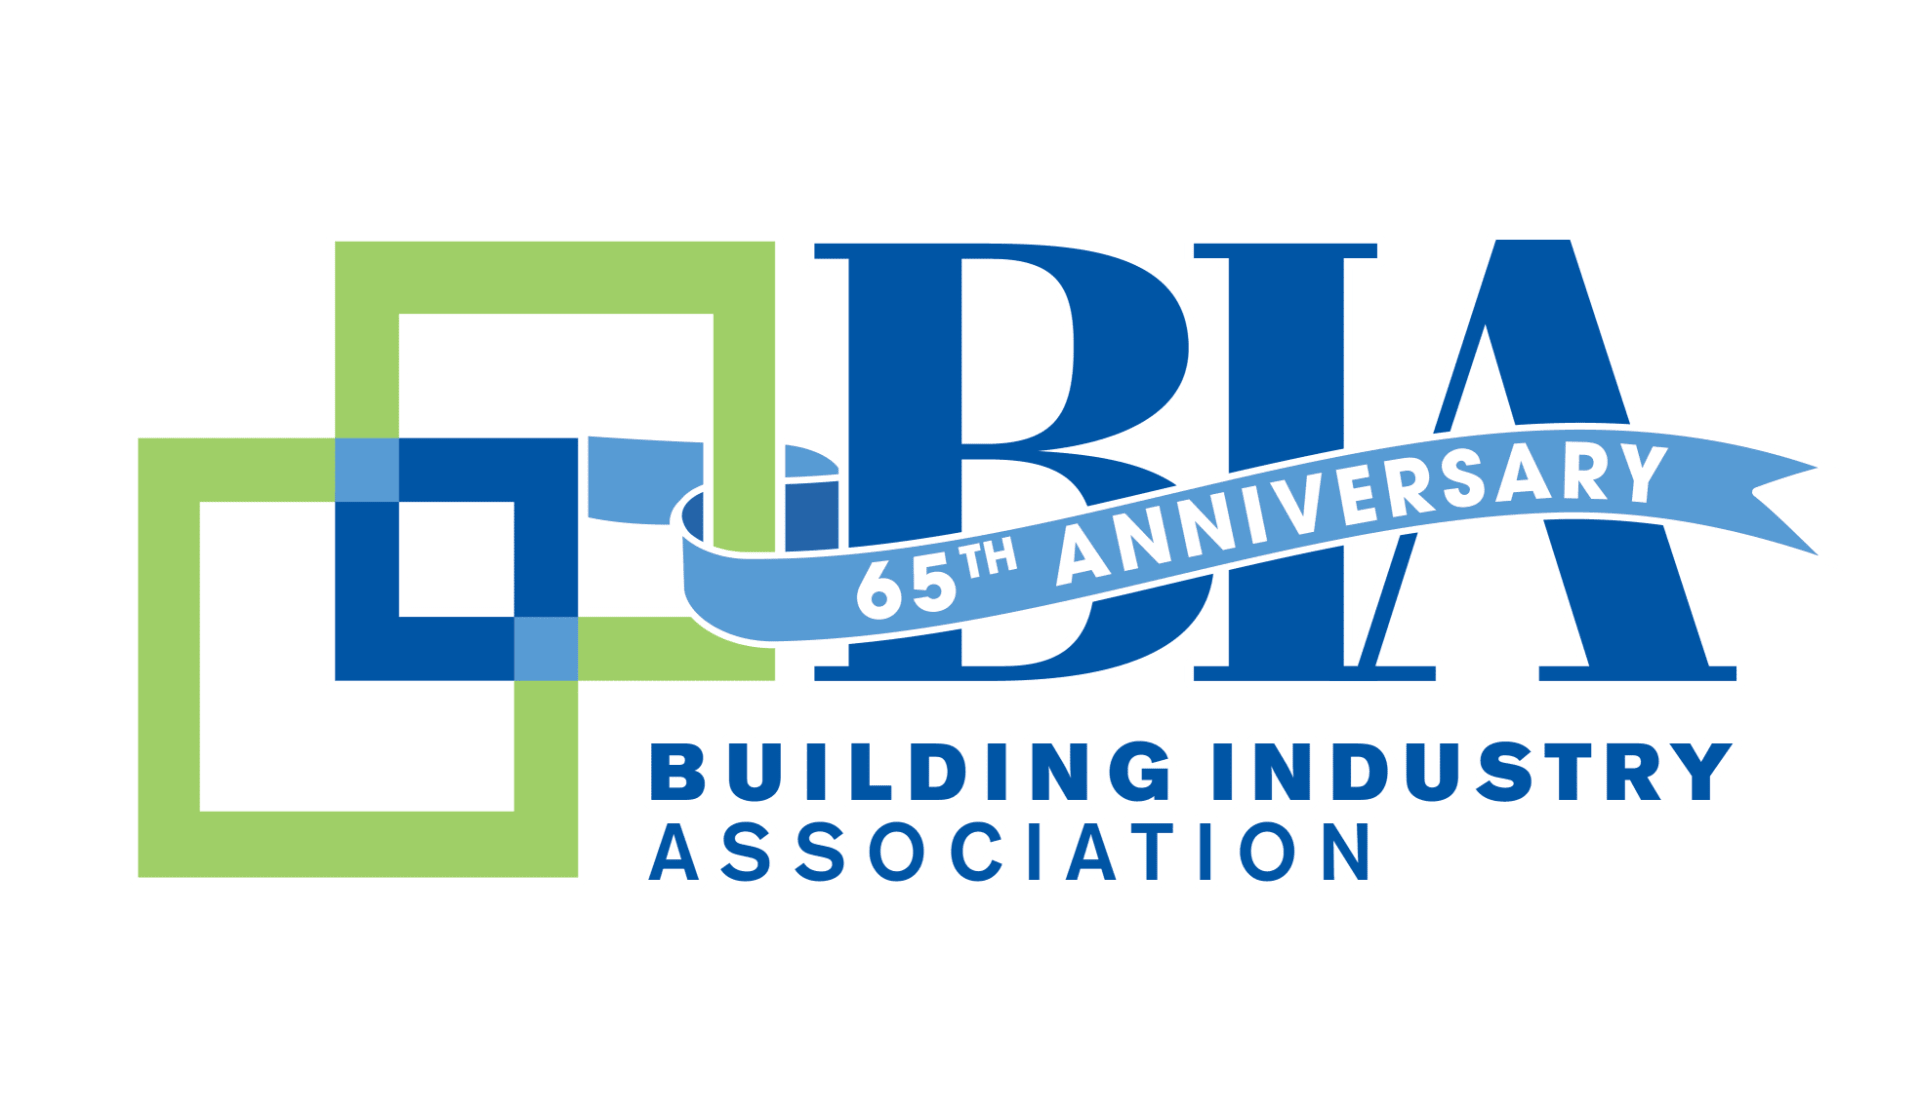 Lee Building Industry Association